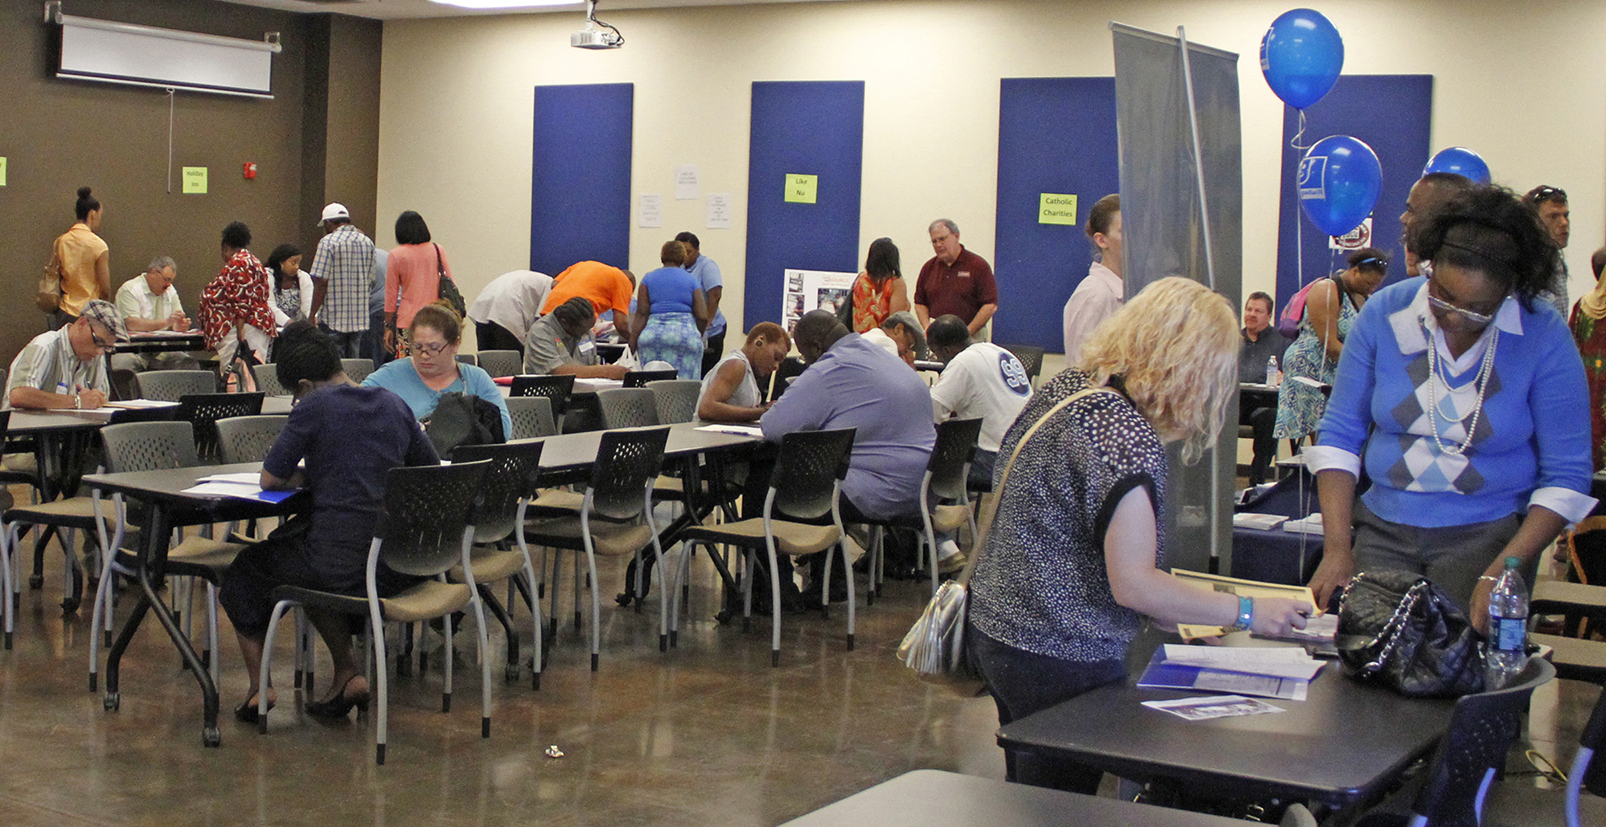 Eight employers to be at Murfreesboro job fair on Tuesday